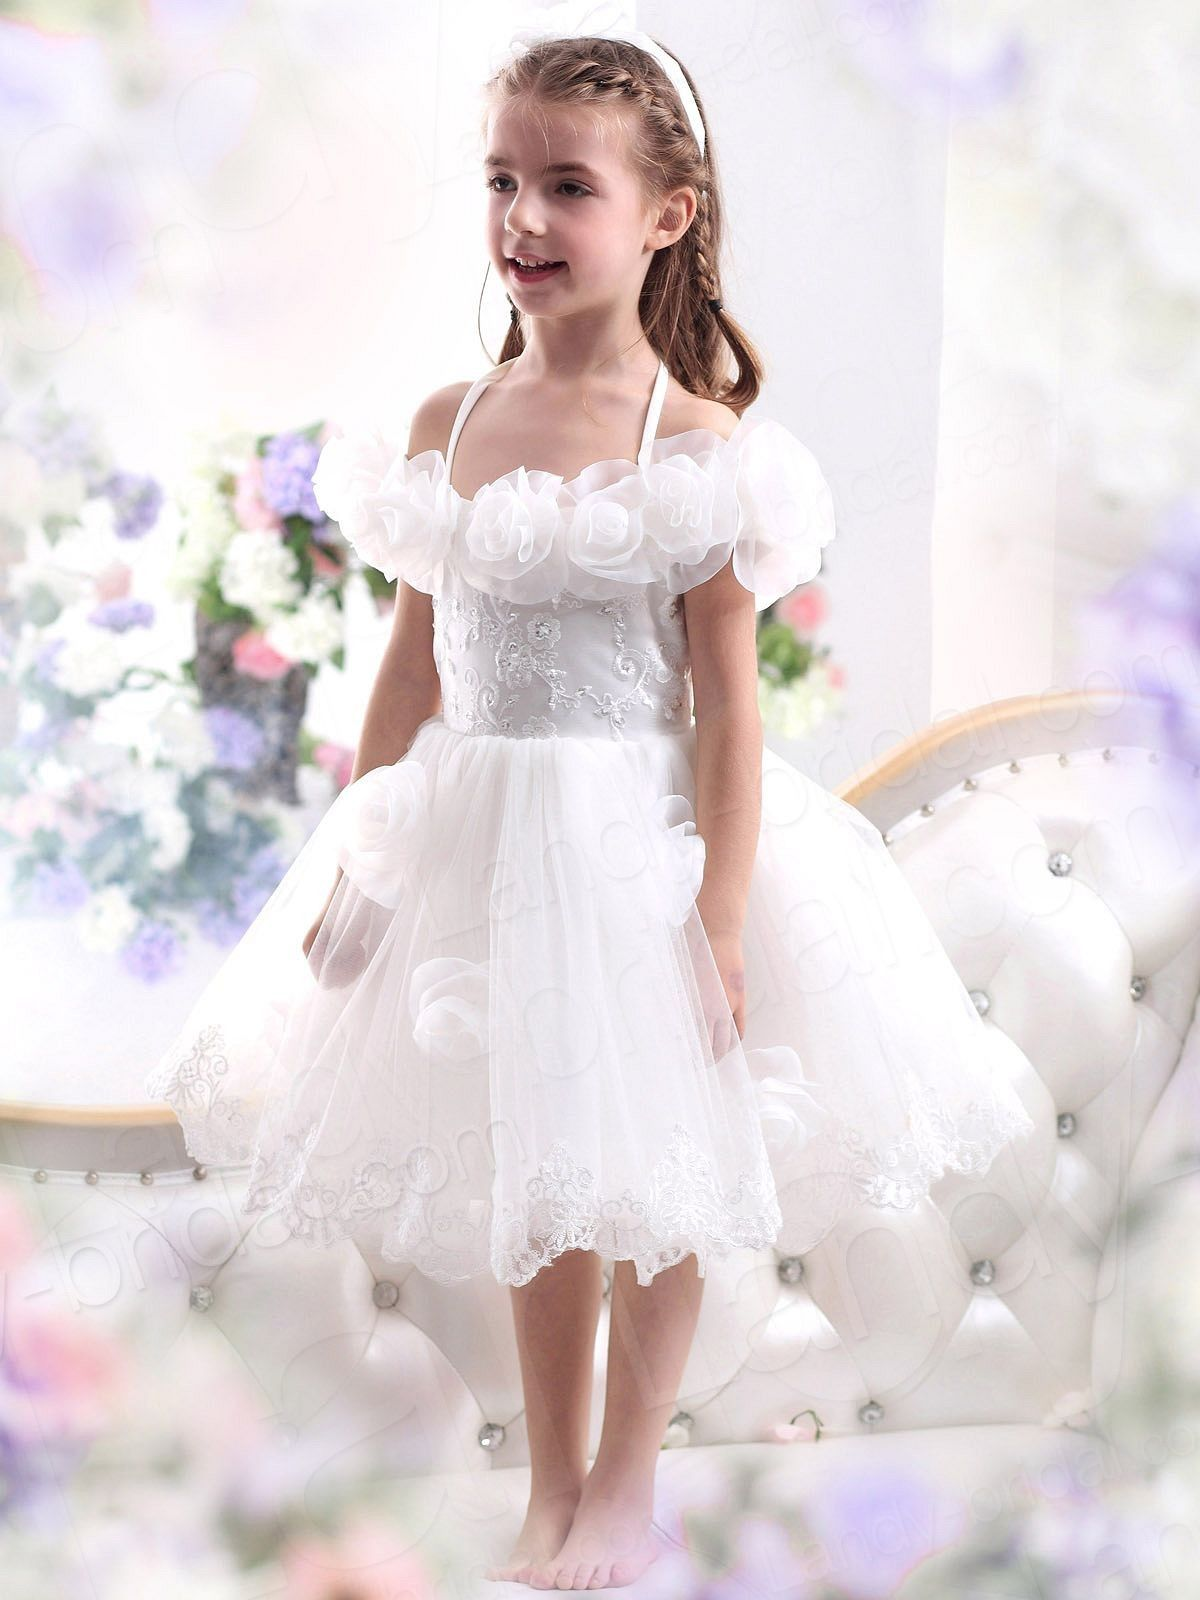 White flower girl dresses are very popular for the wedding ceremony